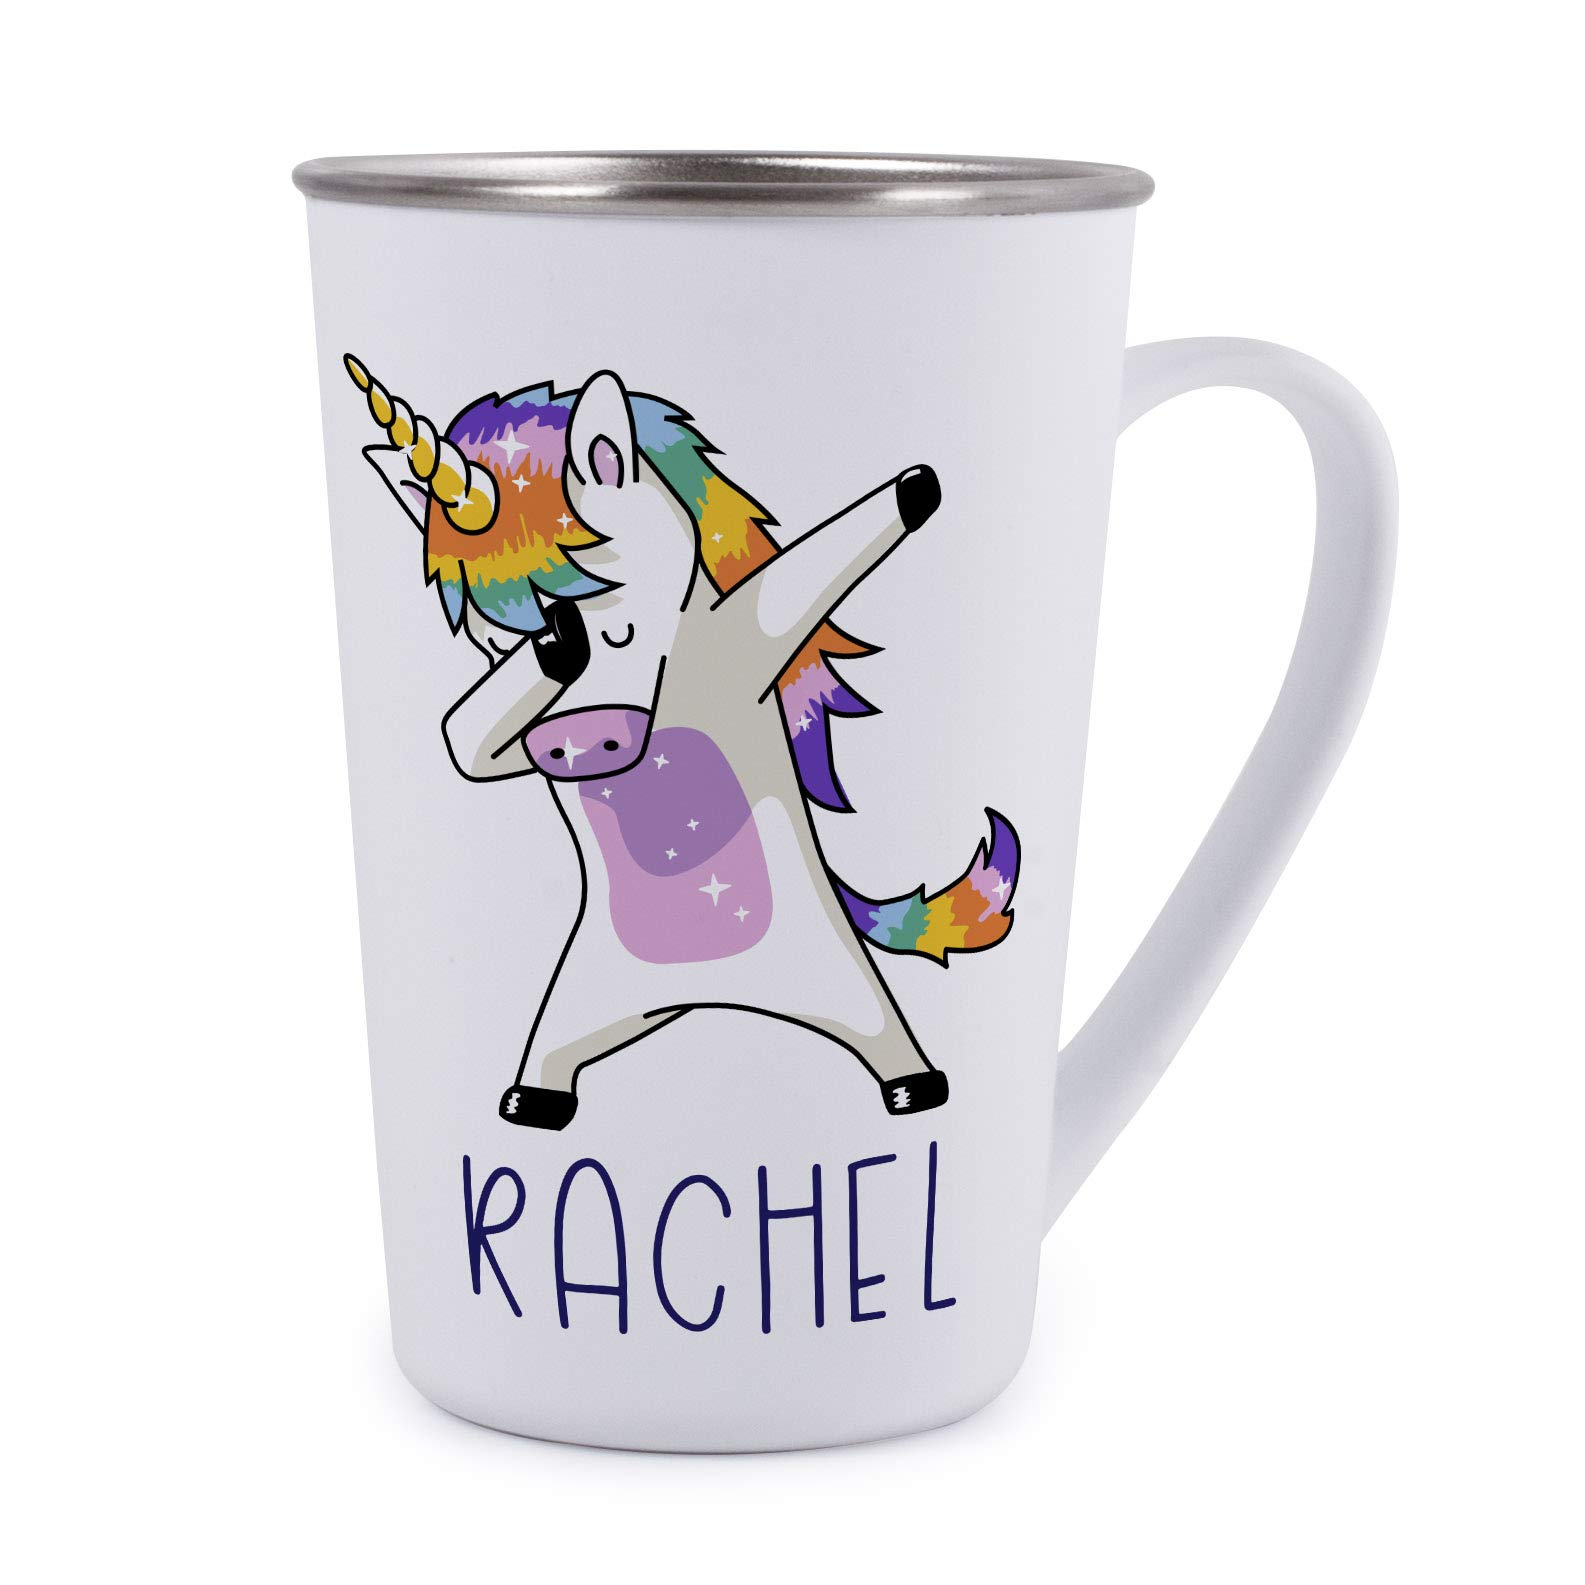 Personalized Gifts Dabbing Unicorn Coffee Mug - 17oz Stainless Steel Tumbler Coffee Mug -Birthday Gifts, Christmas Gifts, Mother's Day Gifts, Father's Day Gifts, Funny Mug for Kids